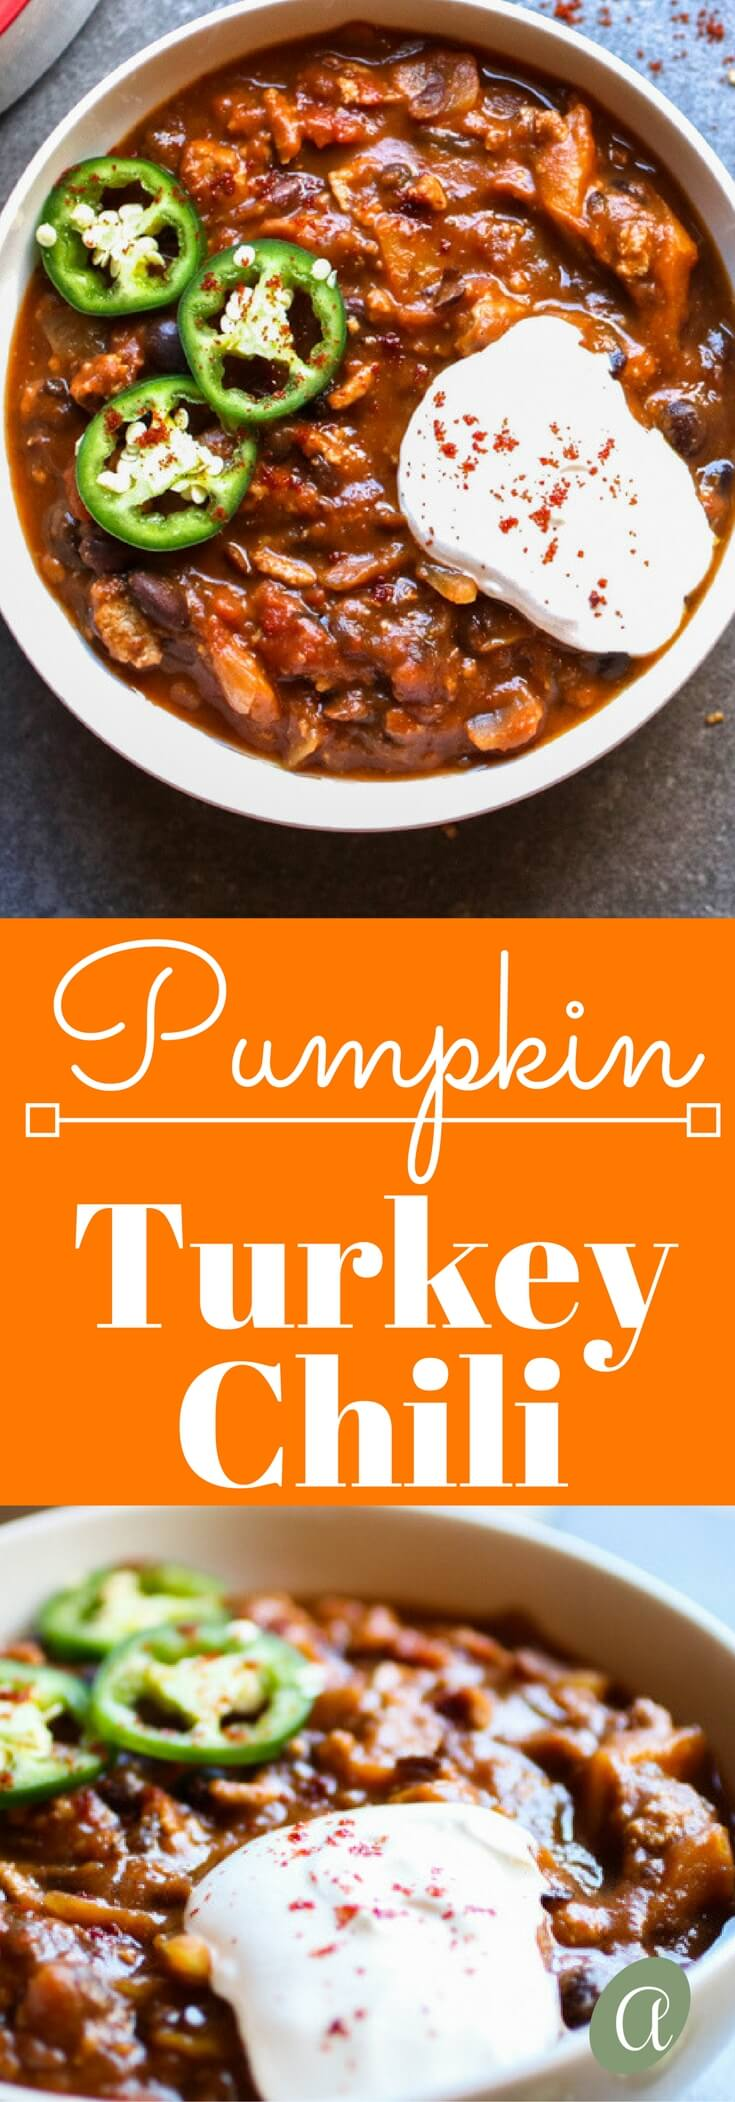 This pumpkin turkey chili recipe is sweet and spicy, the perfect combination of pumpkin, ground turkey, warming spices, and lots of black beans. Healthy comfort food!